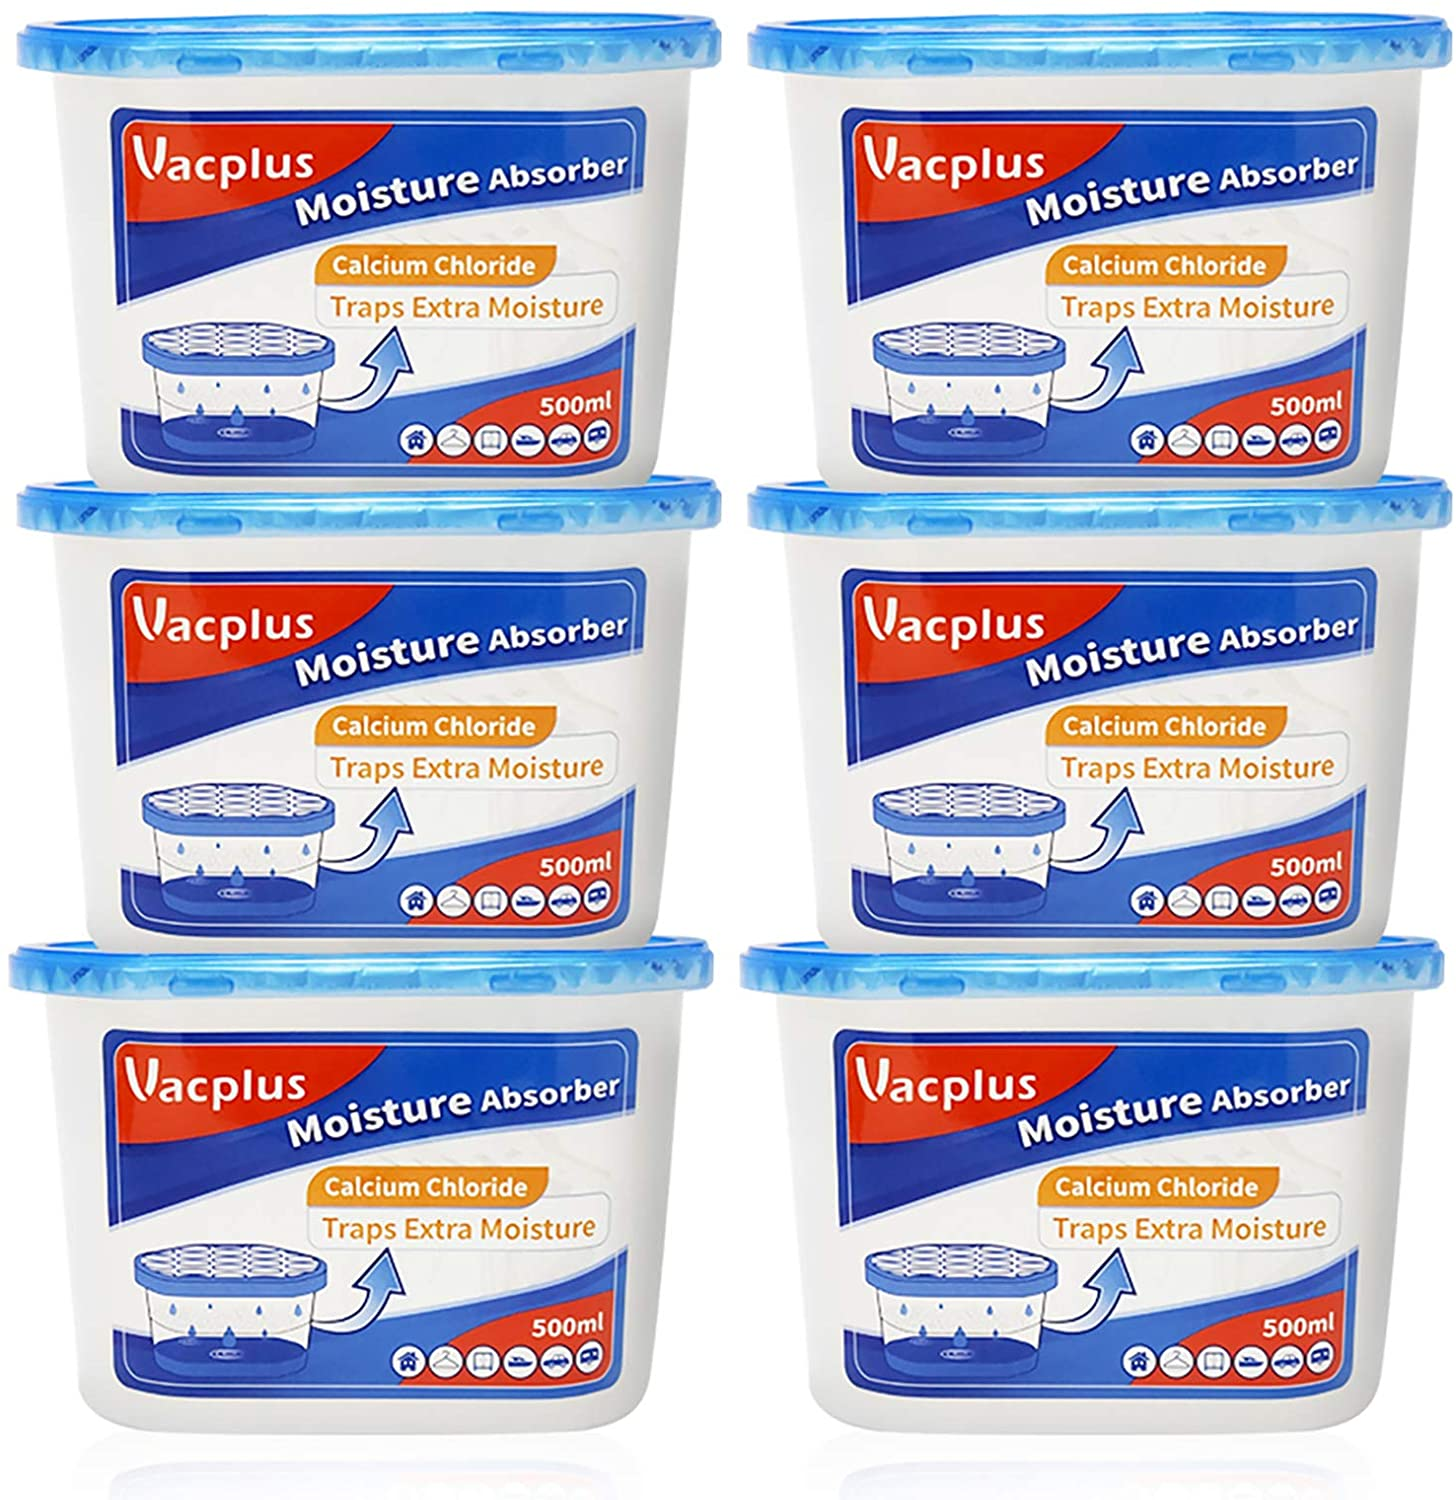 Moisture Absorber Boxes